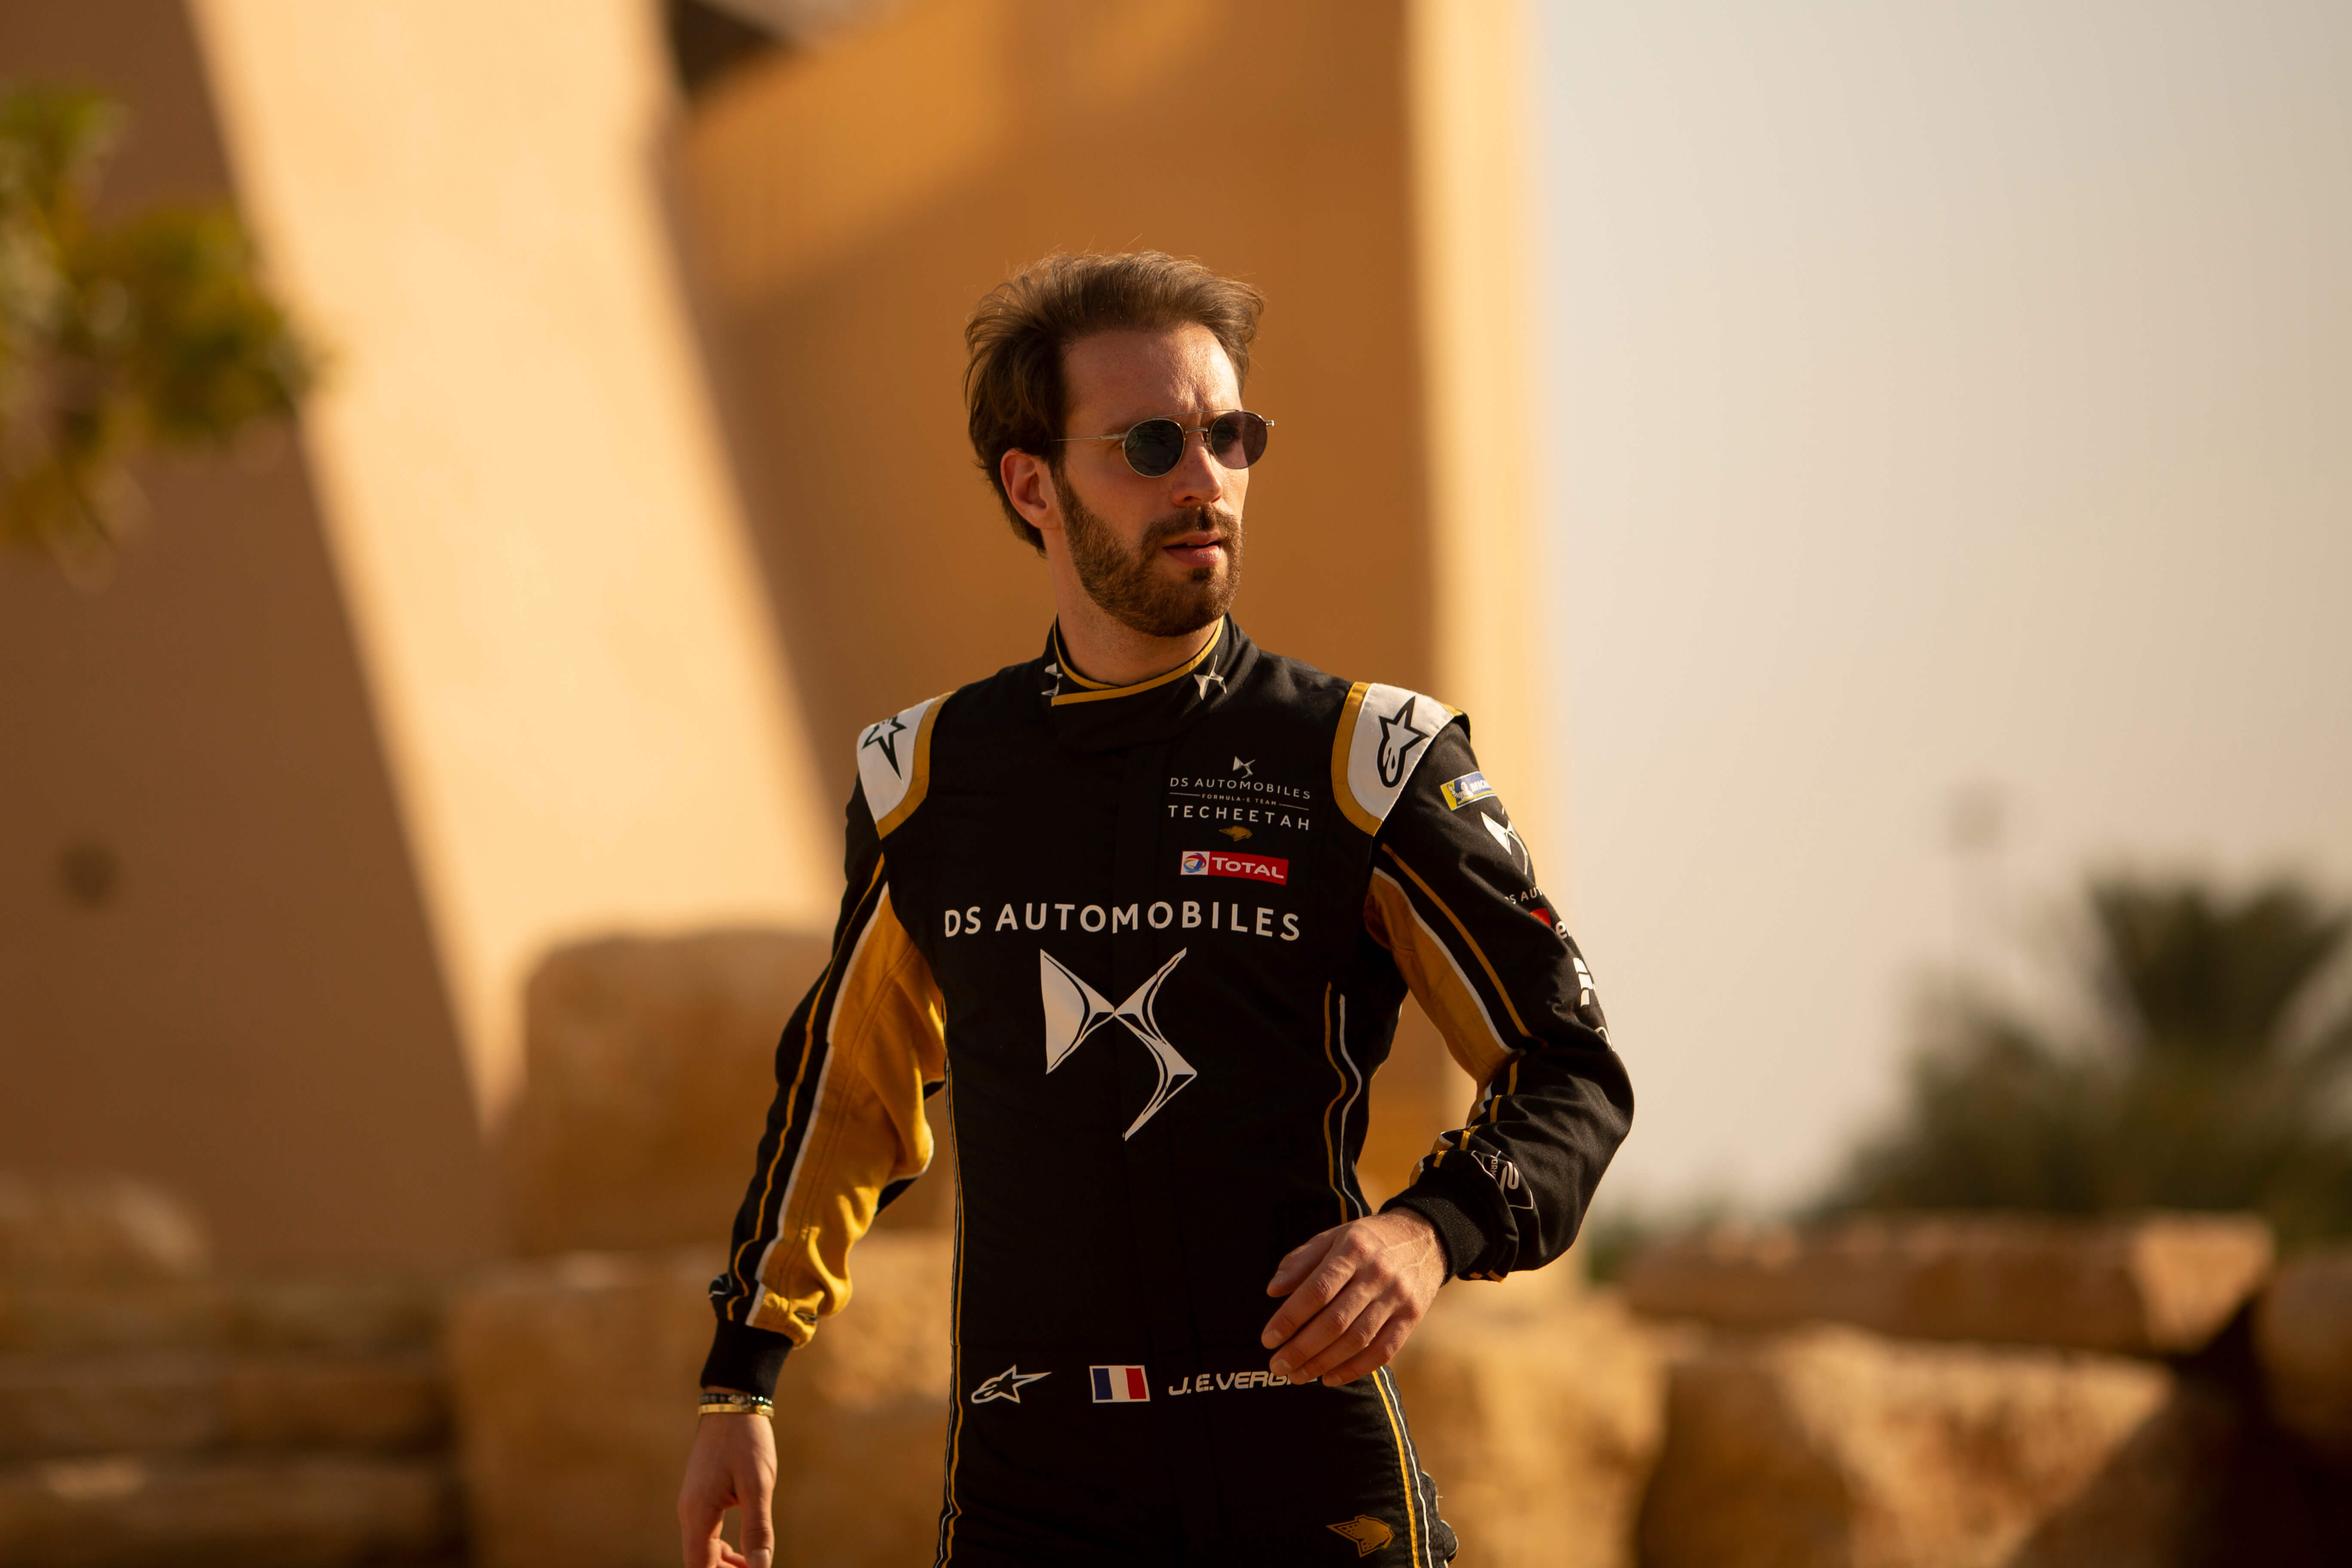 'Iconic', 'Beautiful' and 'Challenging' - Tributes paid to Saudi Arabia's Diriyah Circuit ahead of Formula E's return to the Kingdom